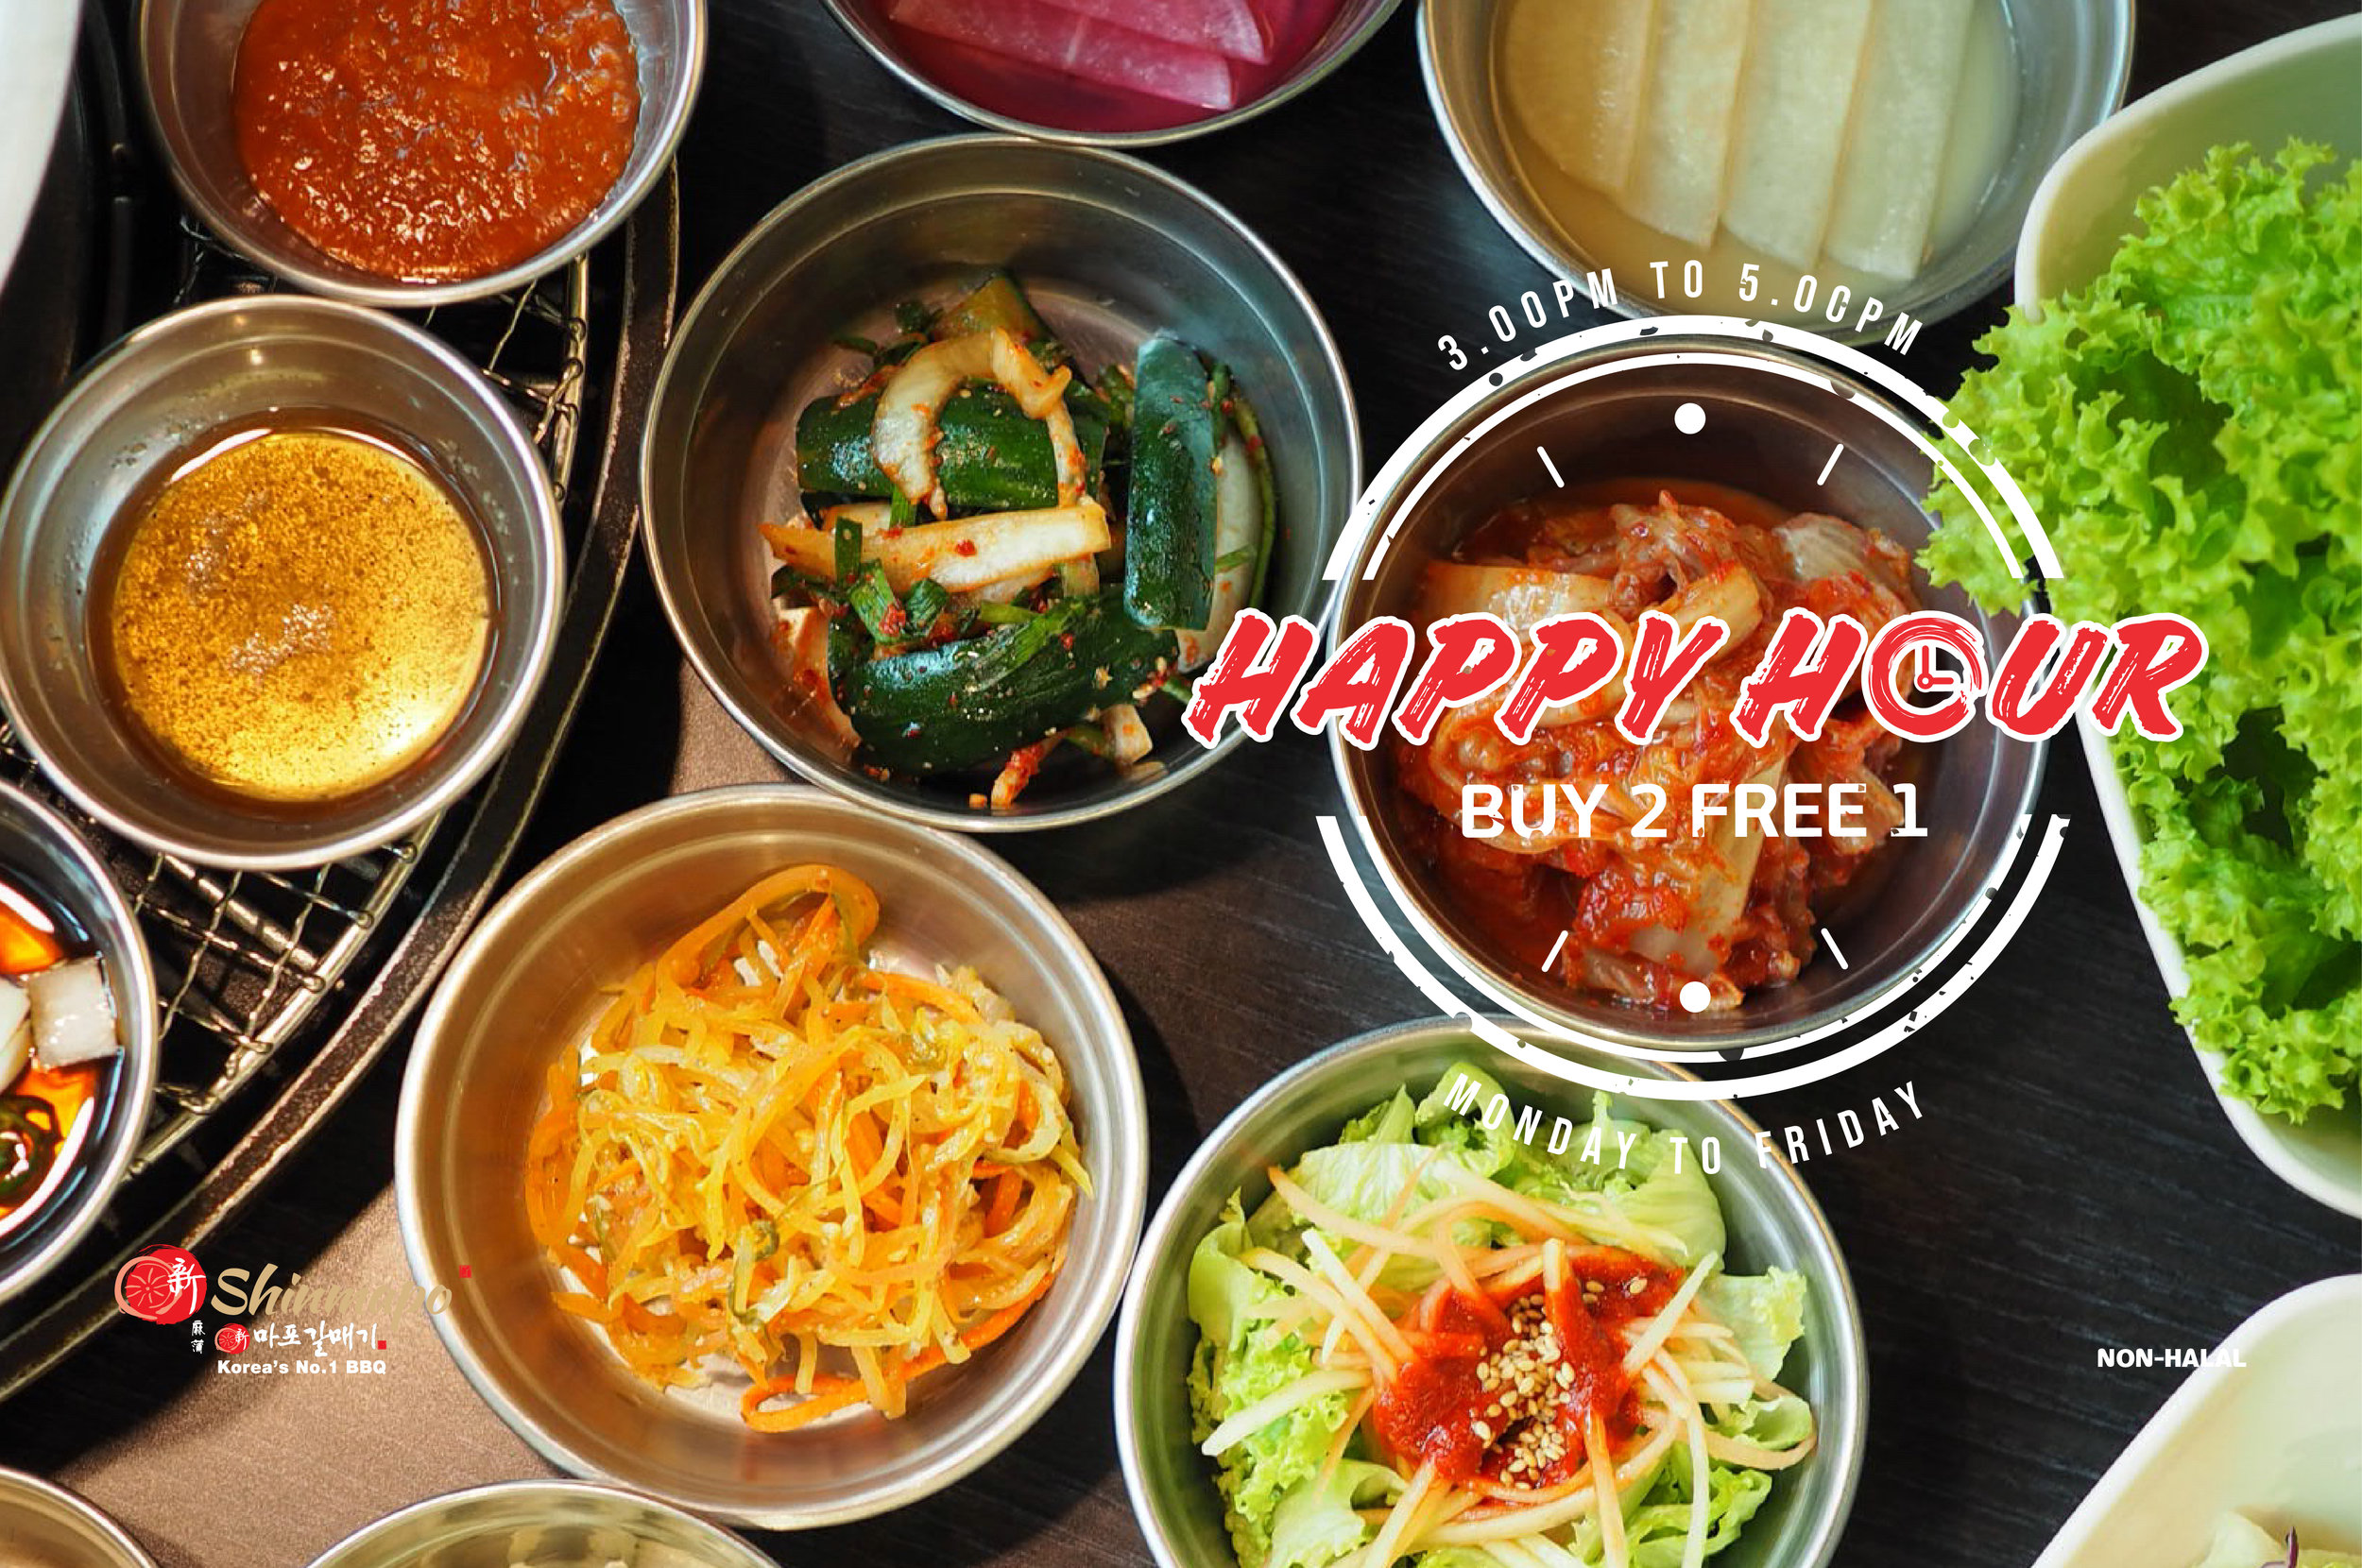 Happy Hour - Here's Promo you shouldn't miss!Happy Hour, BUY 2 FREE 1, available every Monday to Friday, from 3.00pm to 4.00pm at all Shinmapo Korean BBQ outlets!